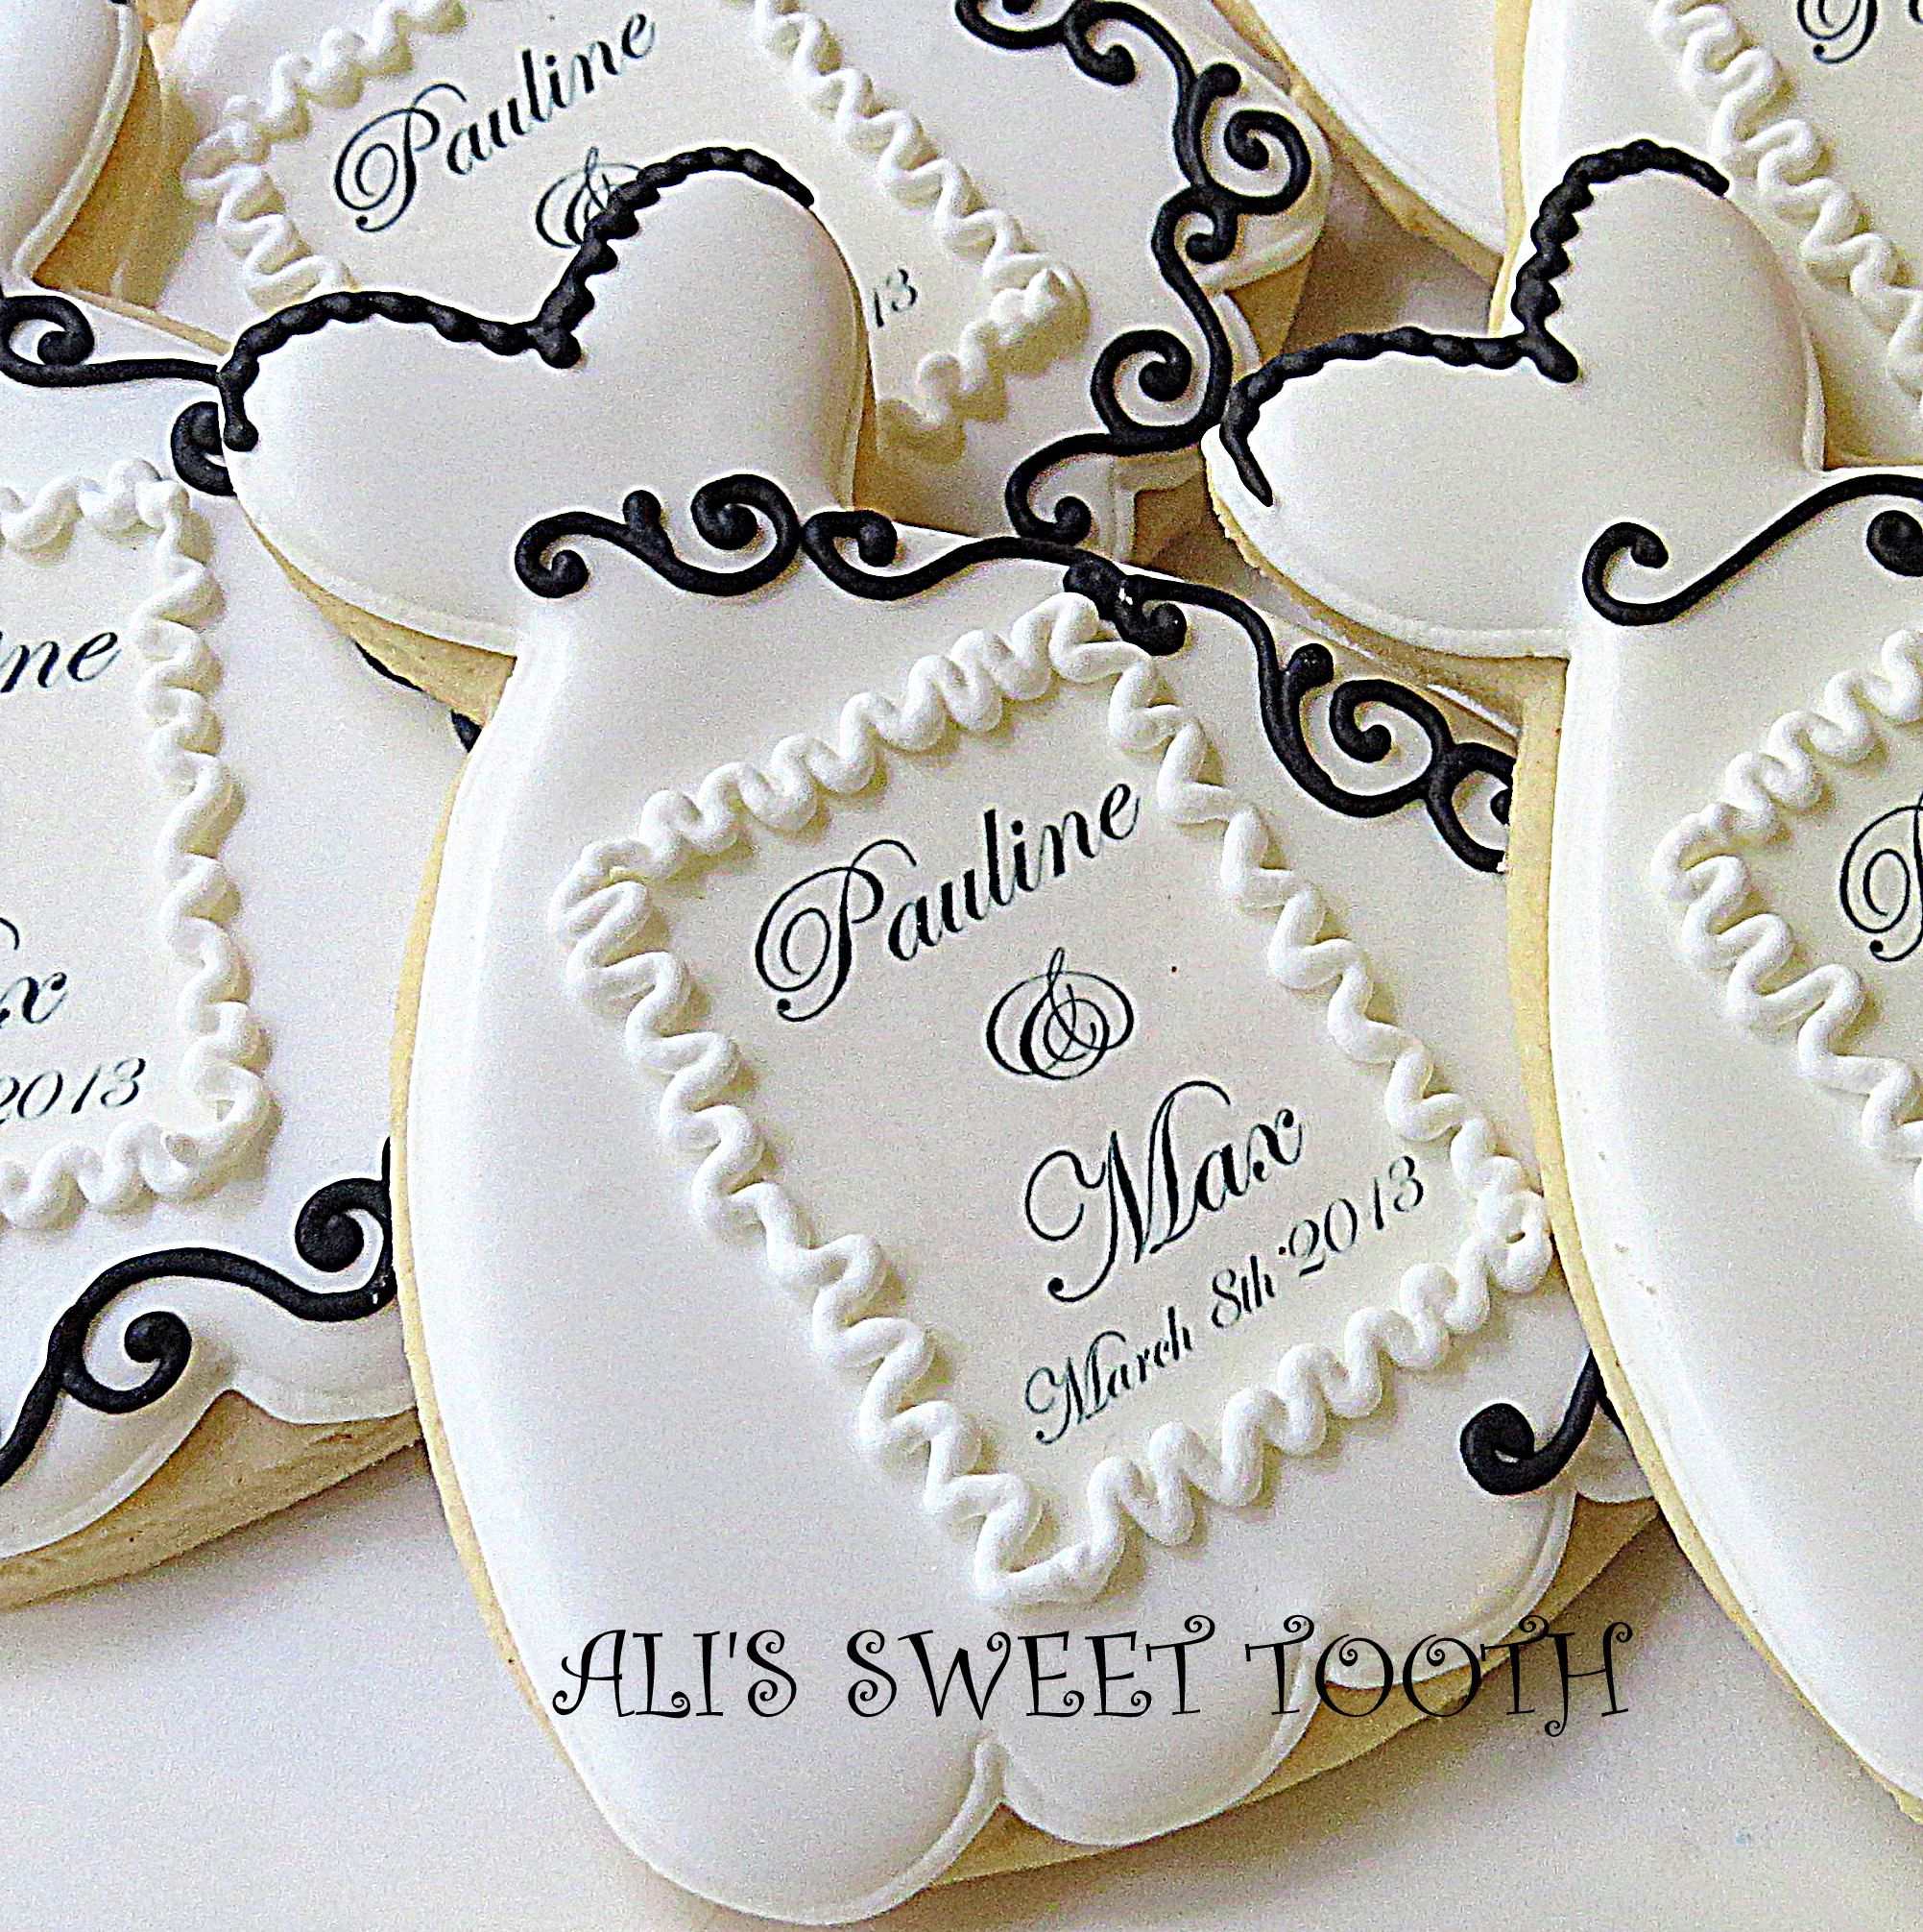 Wedding cookie favors | ideas for wedding cakes | Pinterest | Cookie ...